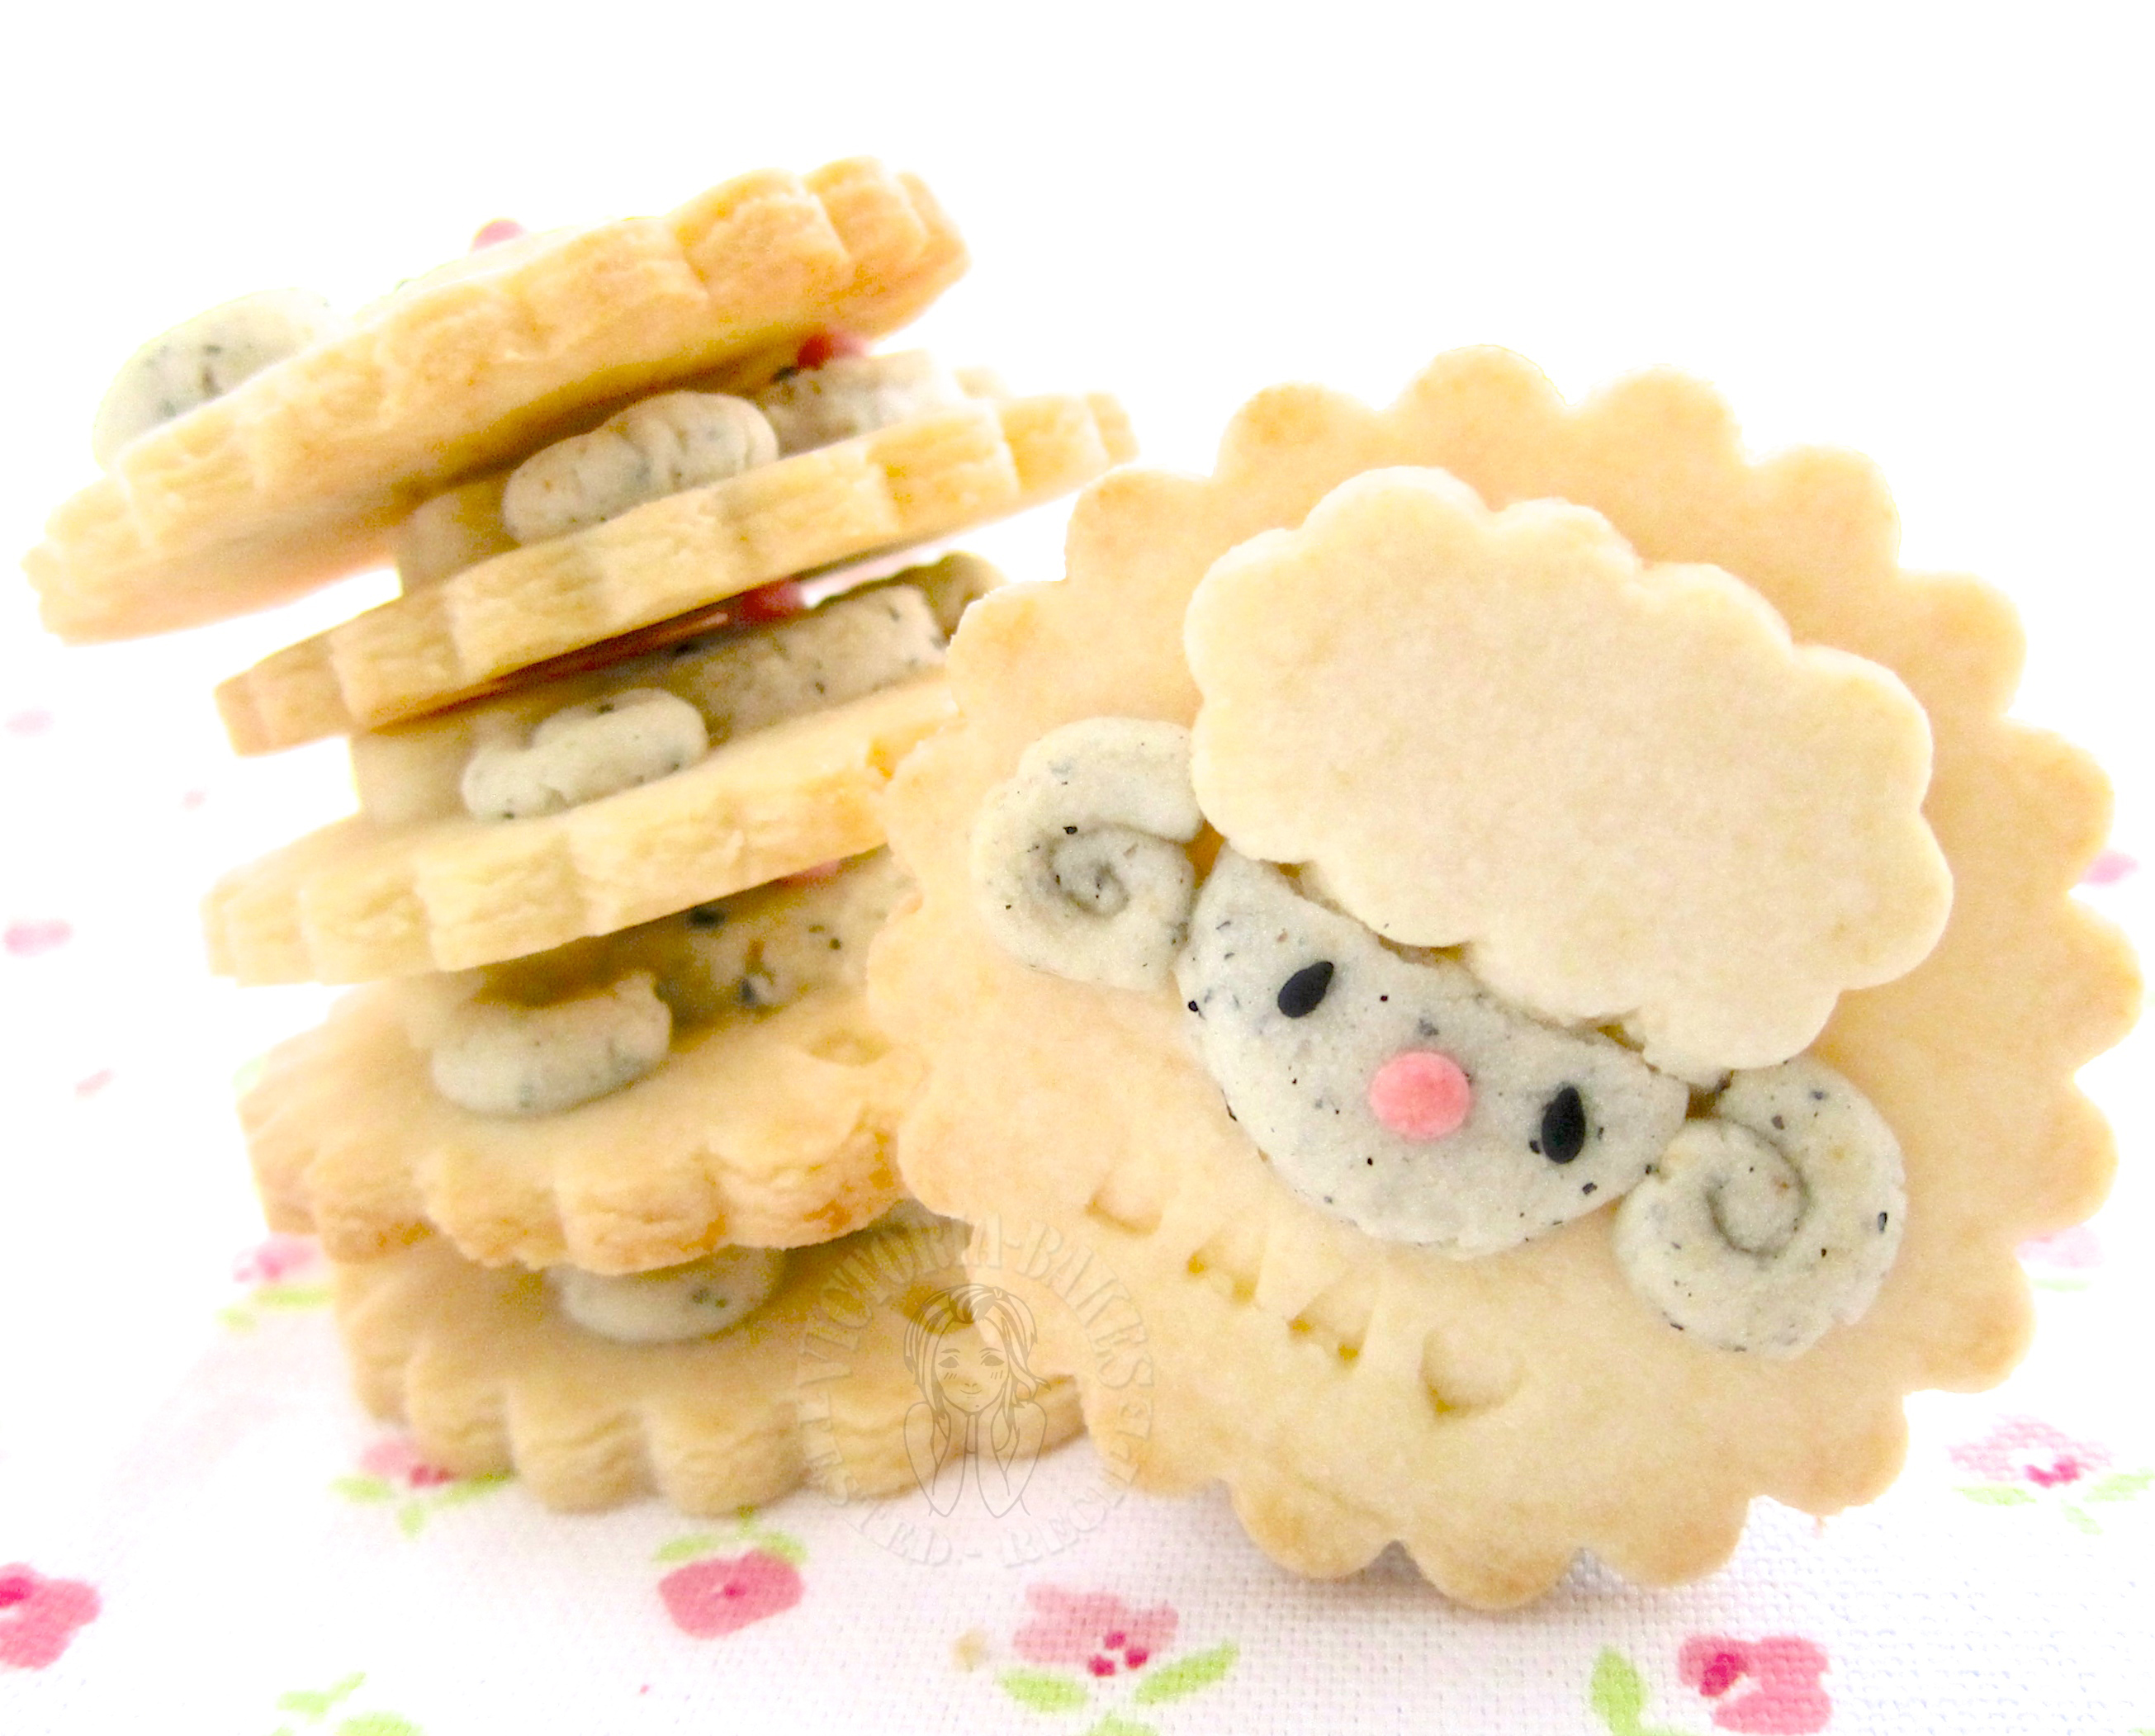 Best Recipes #6 My Homemade cookies: little sheep soy milk cookies 最棒食谱 #6 の我的拿手曲奇饼干:小绵羊豆浆曲奇